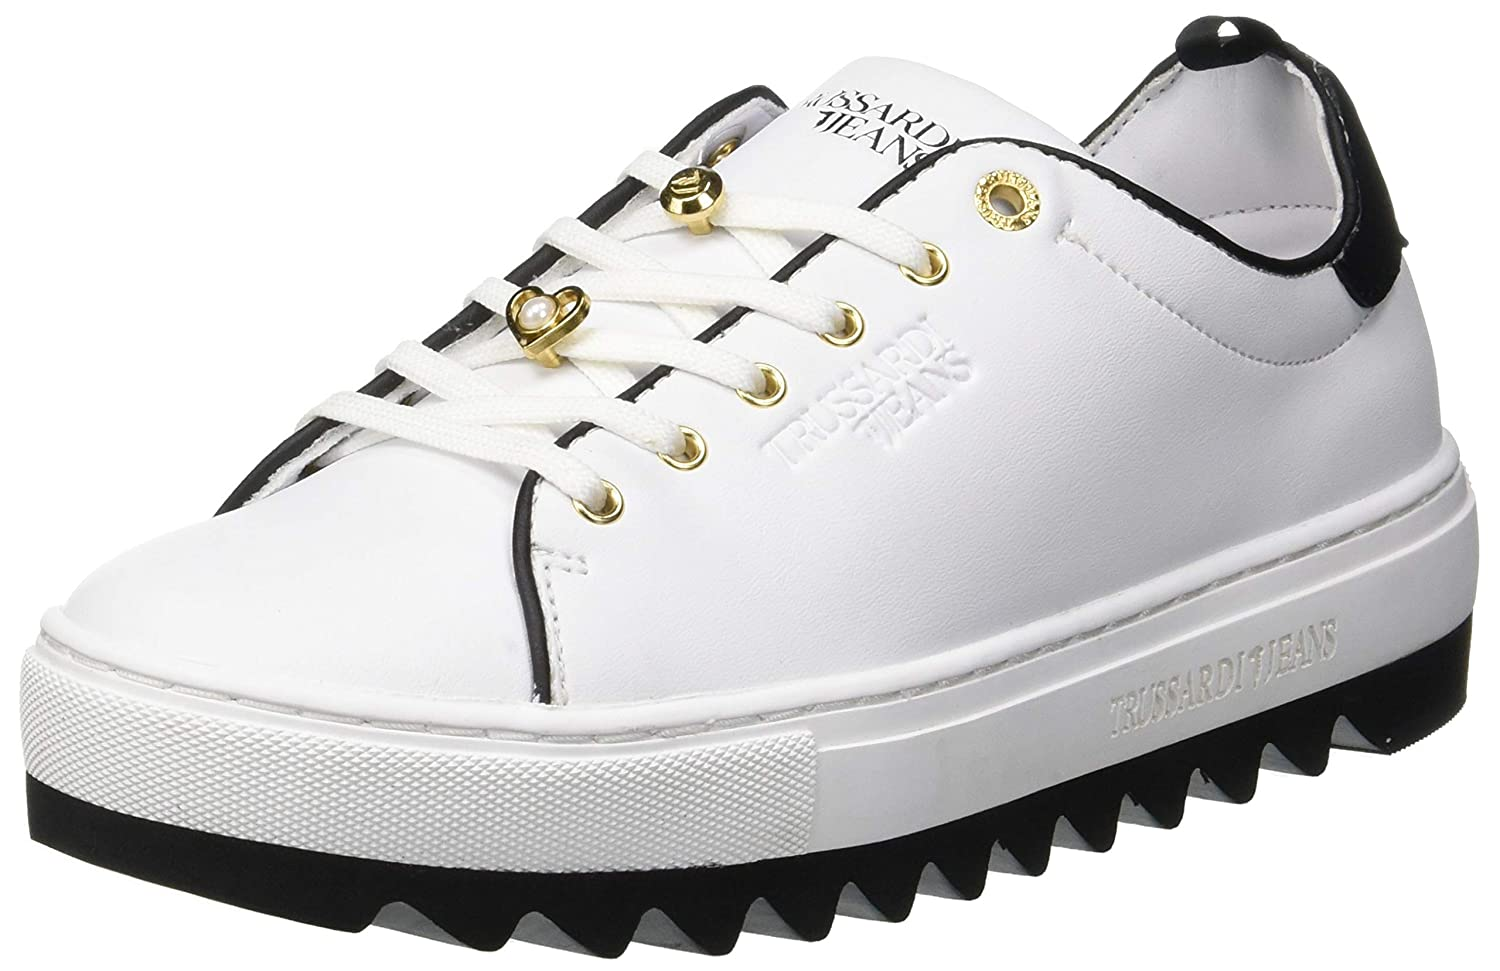 Trussardi Jeans Damen Turnschuhe Pins and Faux Pearls Gymnastikschuhe